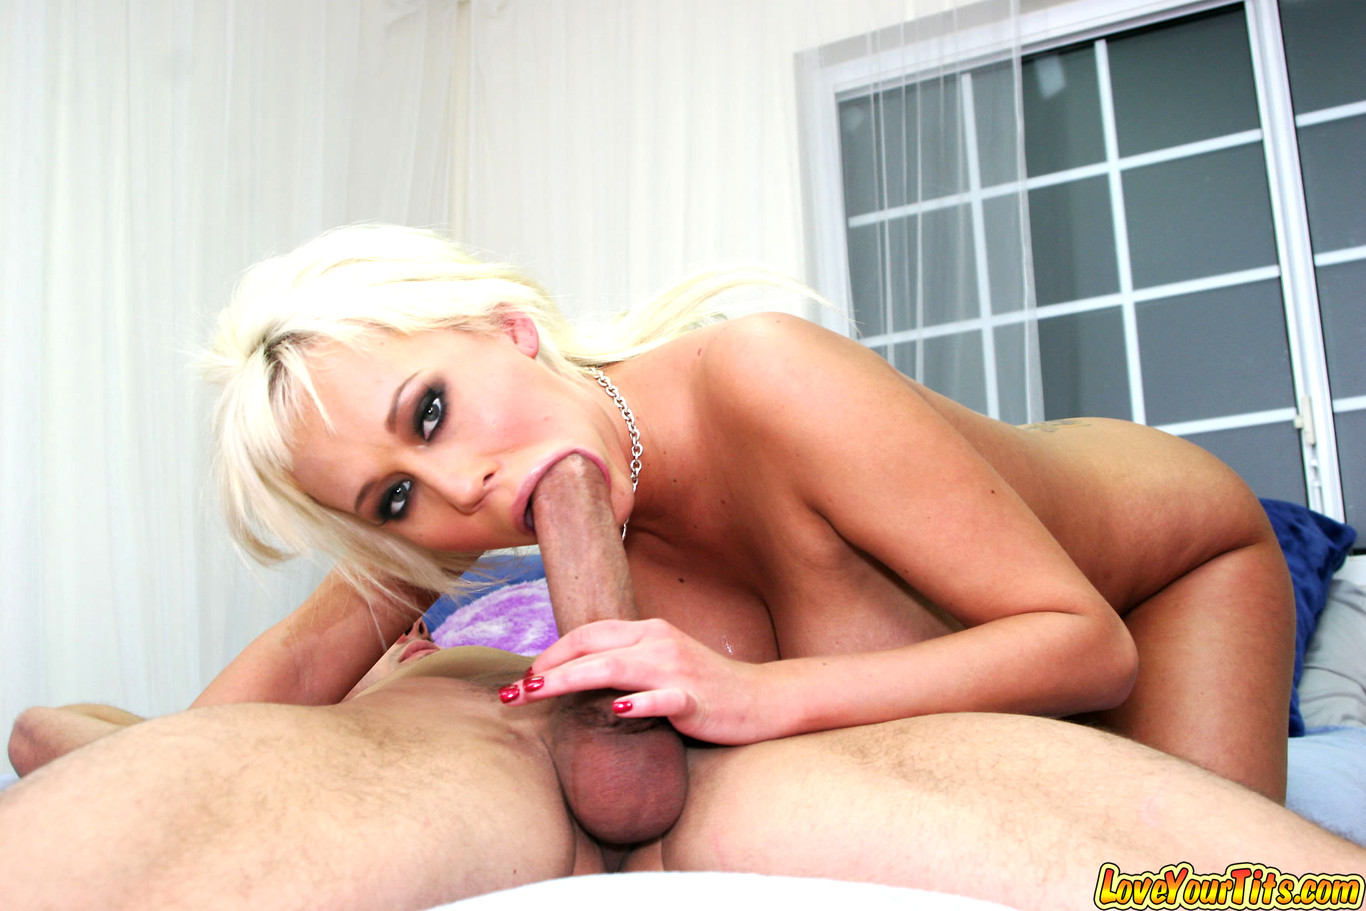 Carly parker porn